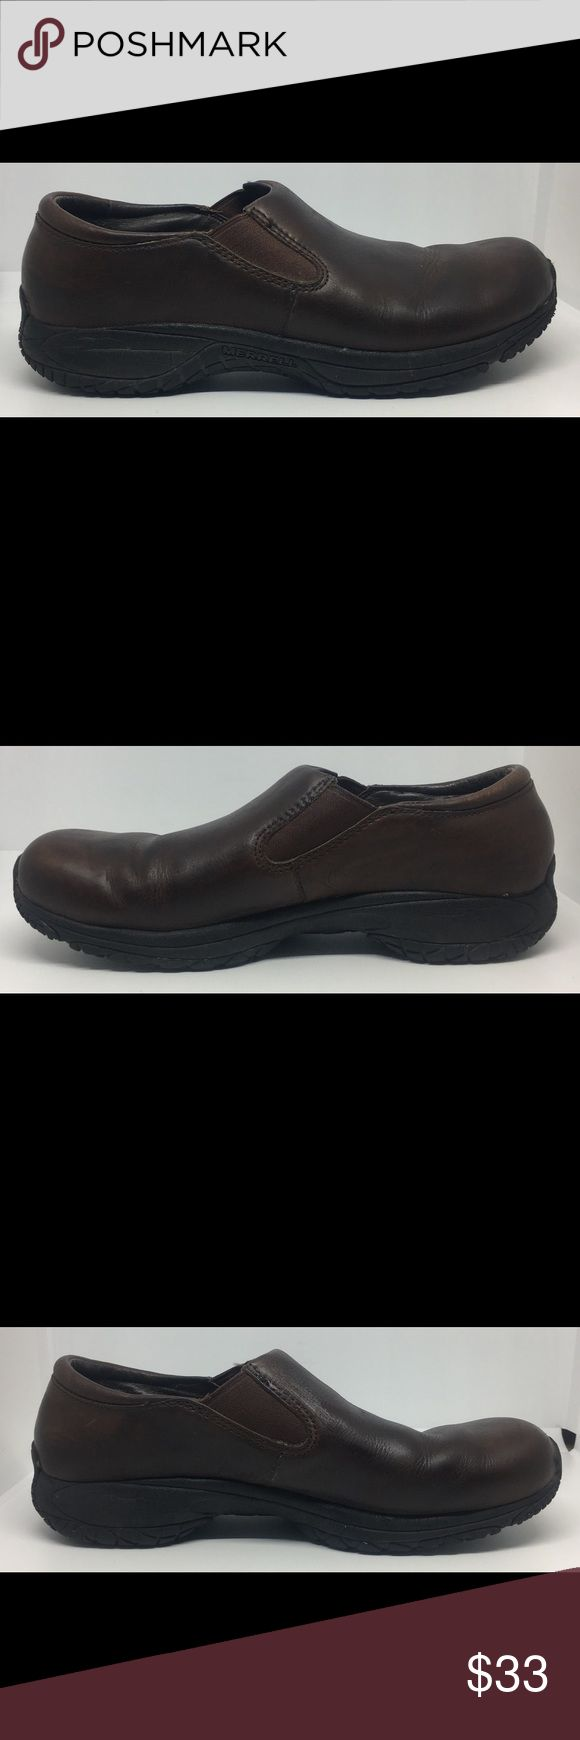 MERRELL Encore Slip On Clogs Shoes Women's 11 Worn a few times. Has some wear but Good Condition. See Pictures. Bin 4 B37 Merrell Shoes Mules & Clogs #ClogsShoesSlipOn